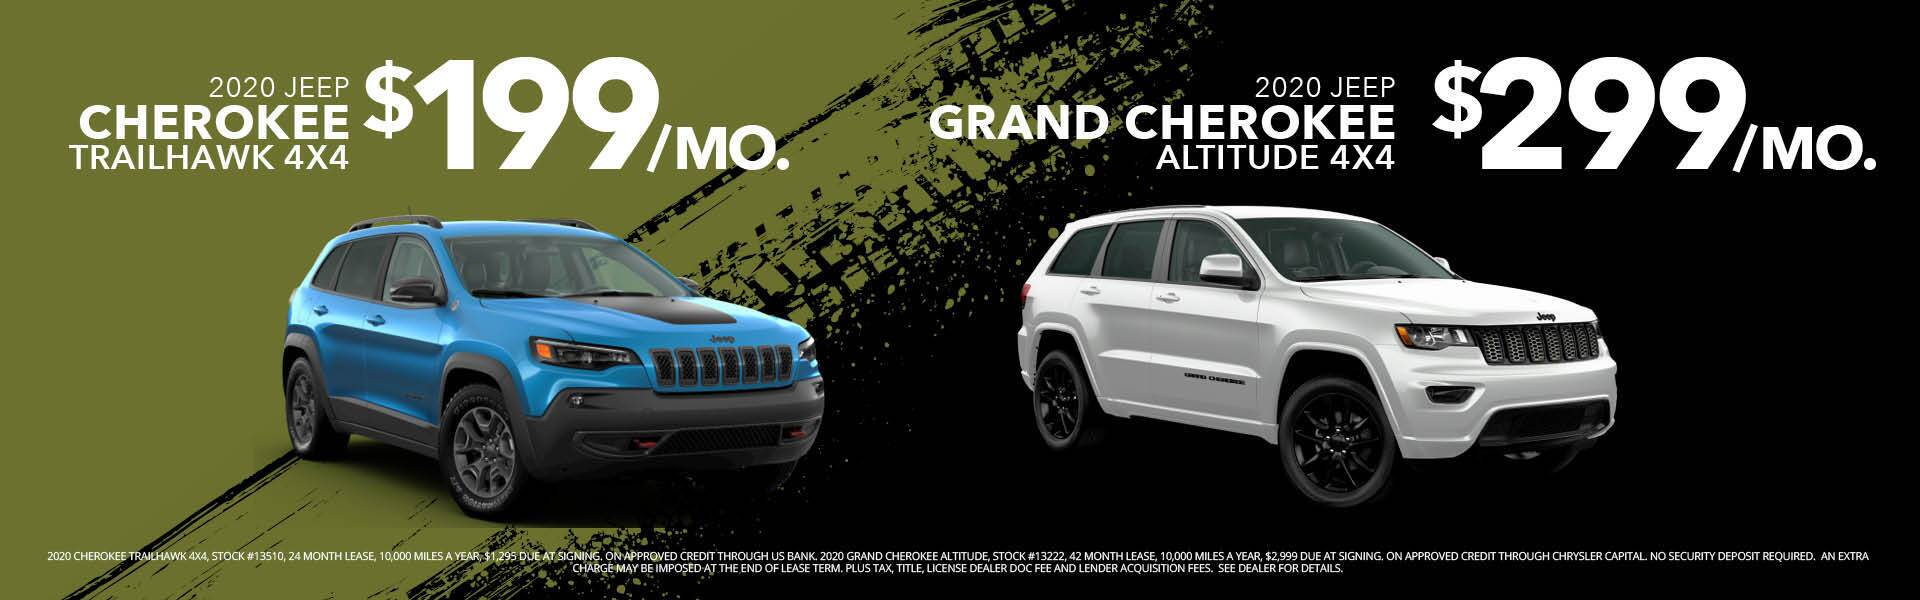 Grand Cherokee & Tailhawk